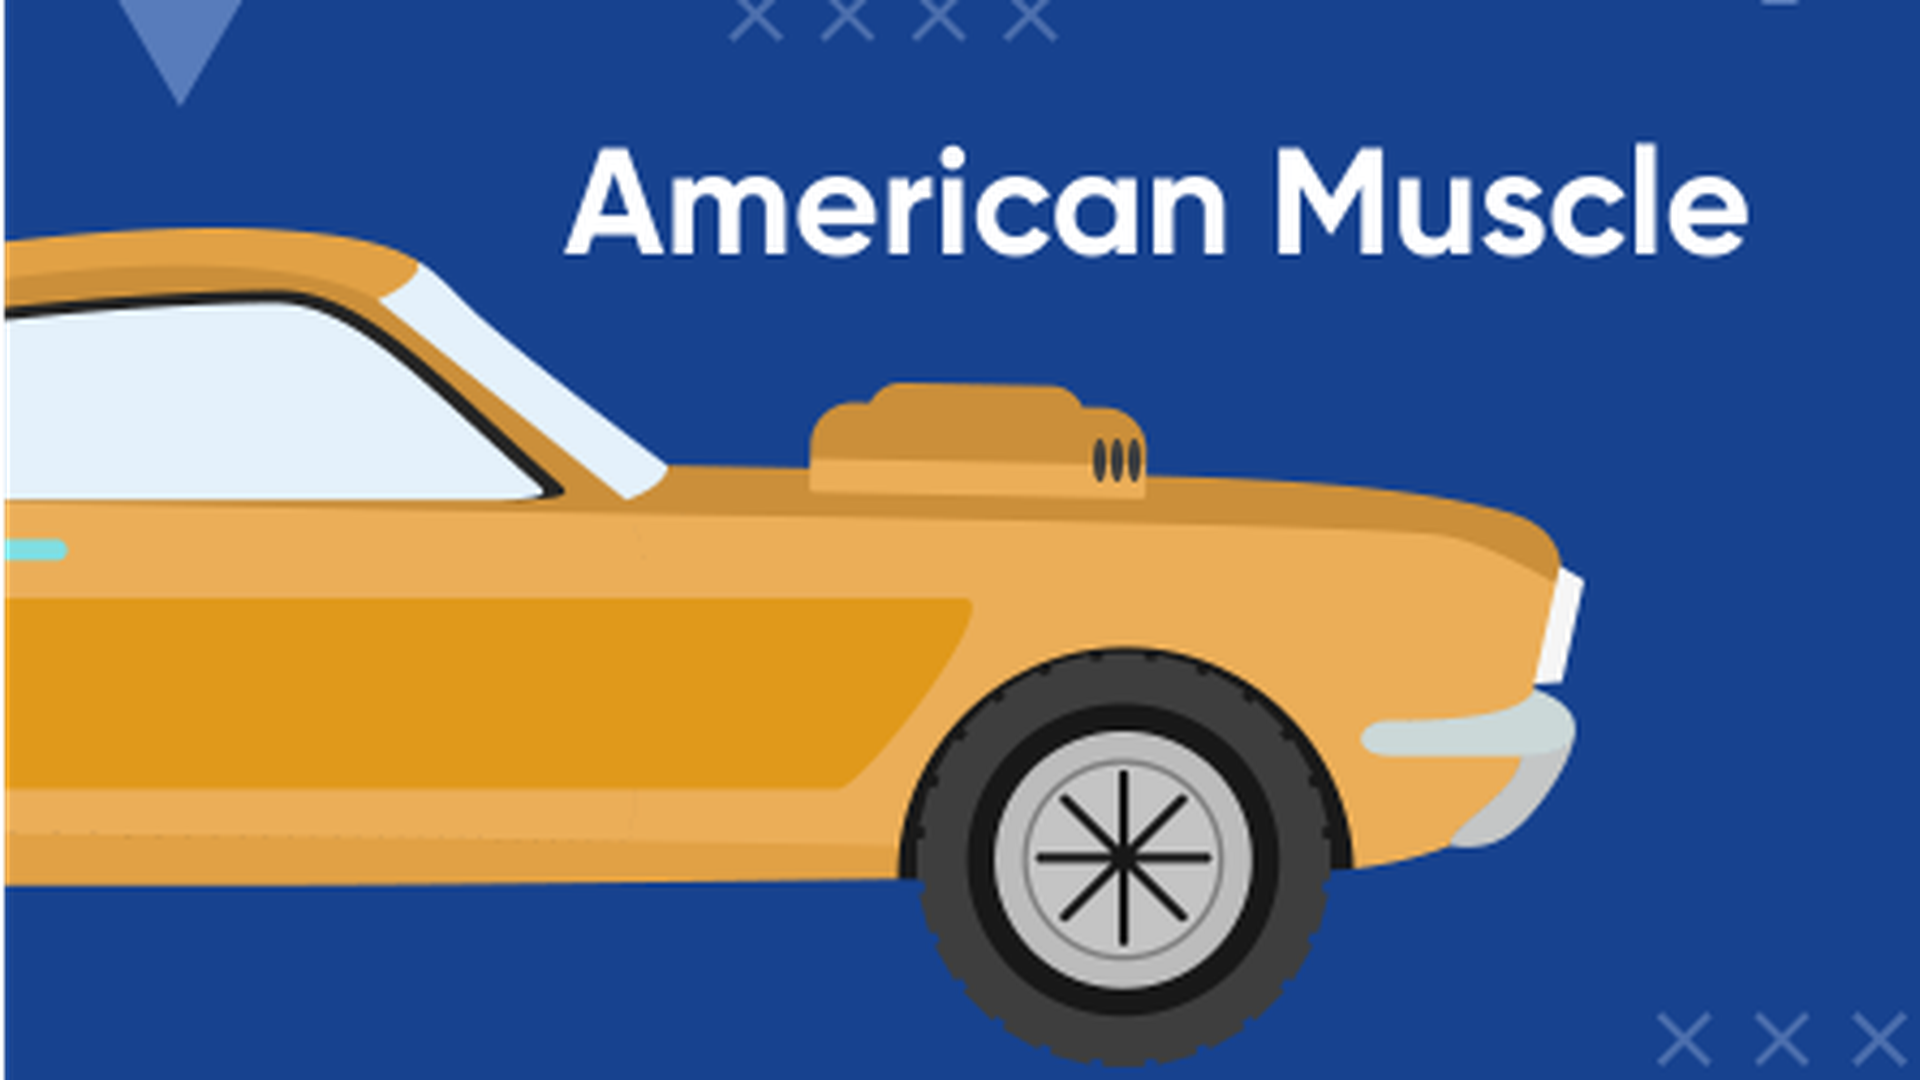 Featured Image of Class C - Modern American Muscle